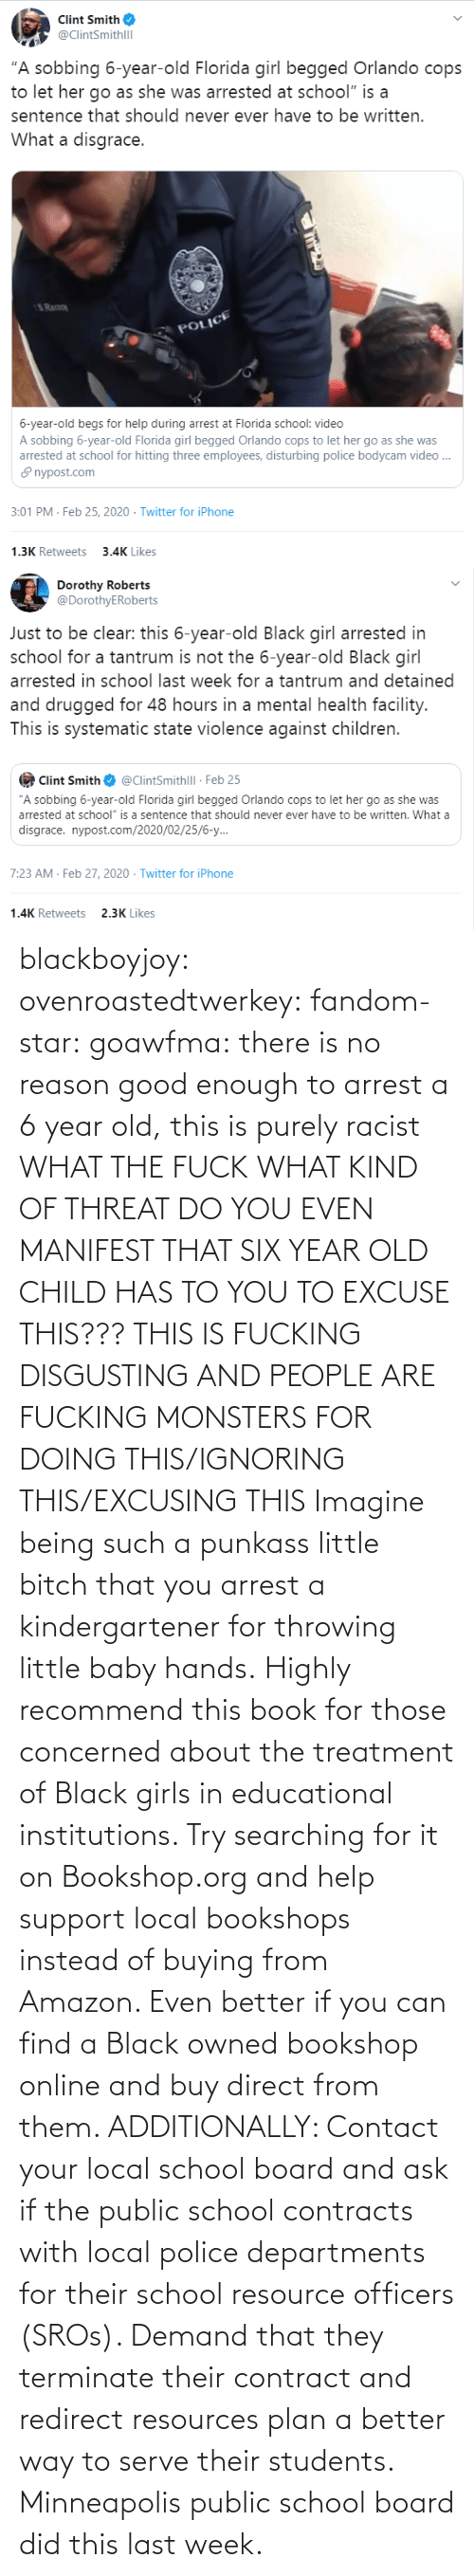 Racist: blackboyjoy:  ovenroastedtwerkey:  fandom-star:  goawfma: there is no reason good enough to arrest a 6 year old, this is purely racist WHAT THE FUCK WHAT KIND OF THREAT DO YOU EVEN MANIFEST THAT SIX YEAR OLD CHILD HAS TO YOU TO EXCUSE THIS??? THIS IS FUCKING DISGUSTING AND PEOPLE ARE FUCKING MONSTERS FOR DOING THIS/IGNORING THIS/EXCUSING THIS    Imagine being such a punkass little bitch that you arrest a kindergartener for throwing little baby hands.  Highly recommend this book for those concerned about the treatment of Black girls in educational institutions.  Try searching for it on Bookshop.org and help support local bookshops instead of buying from Amazon. Even better if you can find a Black owned bookshop online and buy direct from them.  ADDITIONALLY: Contact your local school board and ask if the public school contracts with local police departments for their school resource officers (SROs). Demand that they terminate their contract and redirect resources plan a better way to serve their students. Minneapolis public school board did this last week.